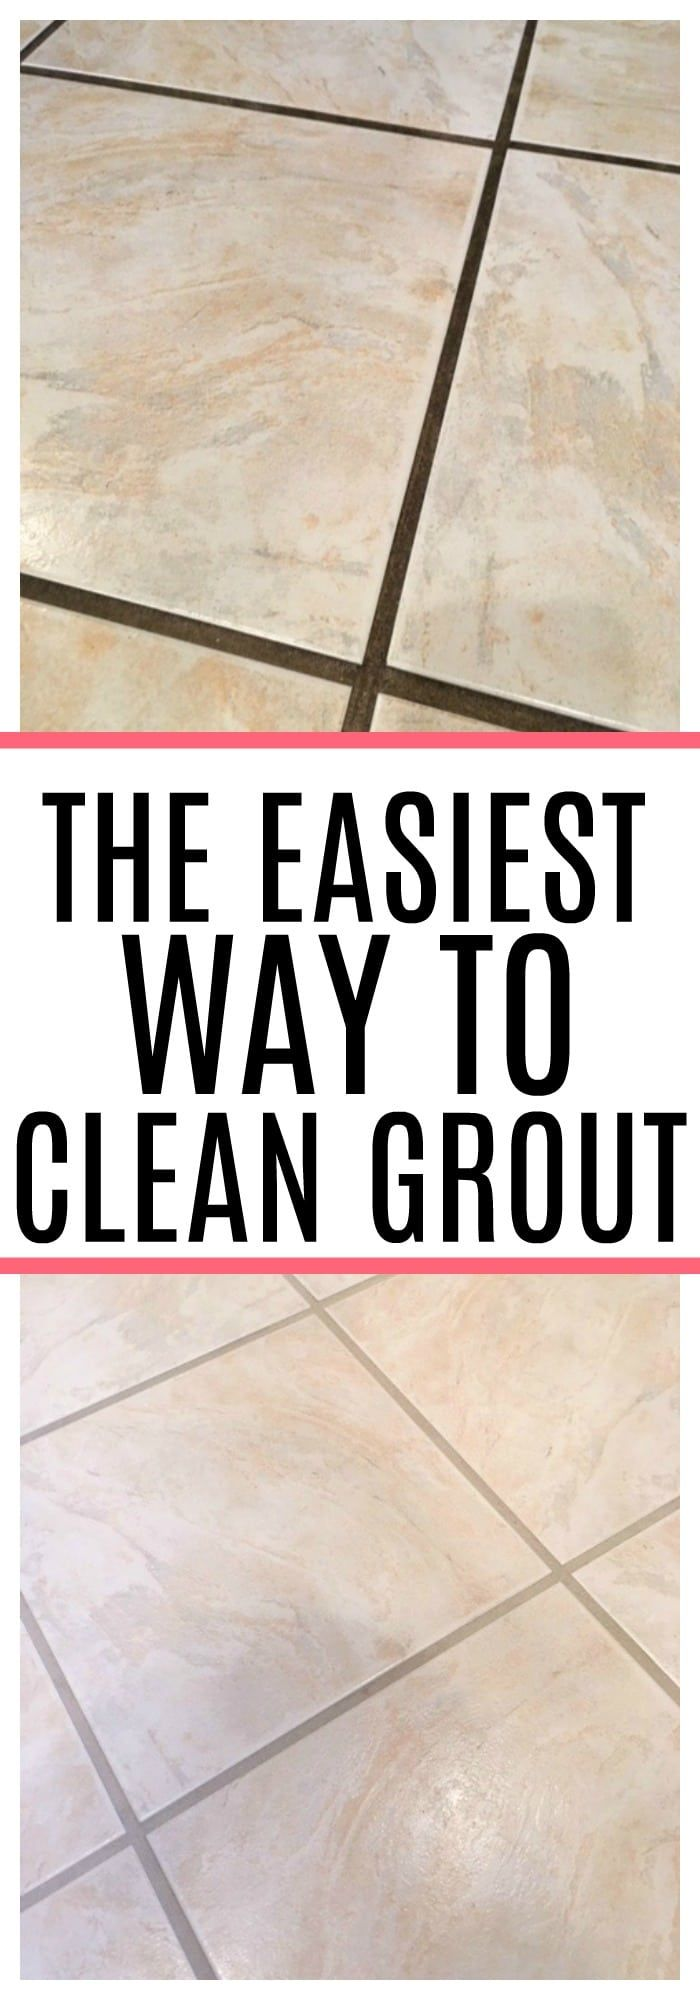 The Easiest Way To Clean Grout Helpful Hints Cleaning